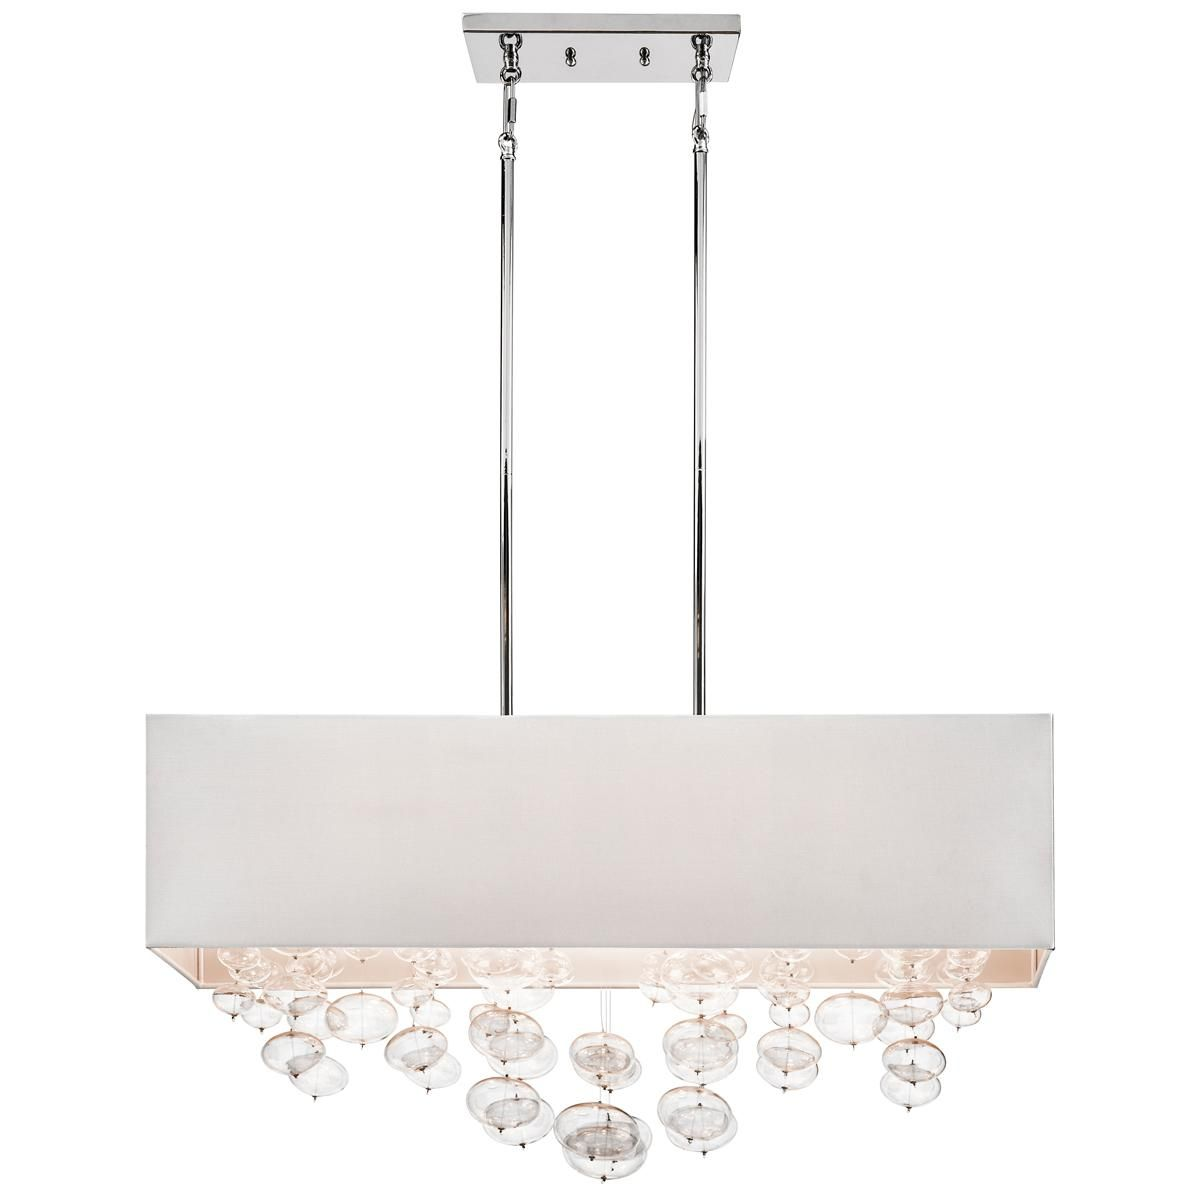 Rectangle shade and glass bubbles island chandelier my favorite halogen contemporary rectangular pendant in chrome finish with white linenbubbles shade from the piatt collection by elan lighting 83248 audiocablefo